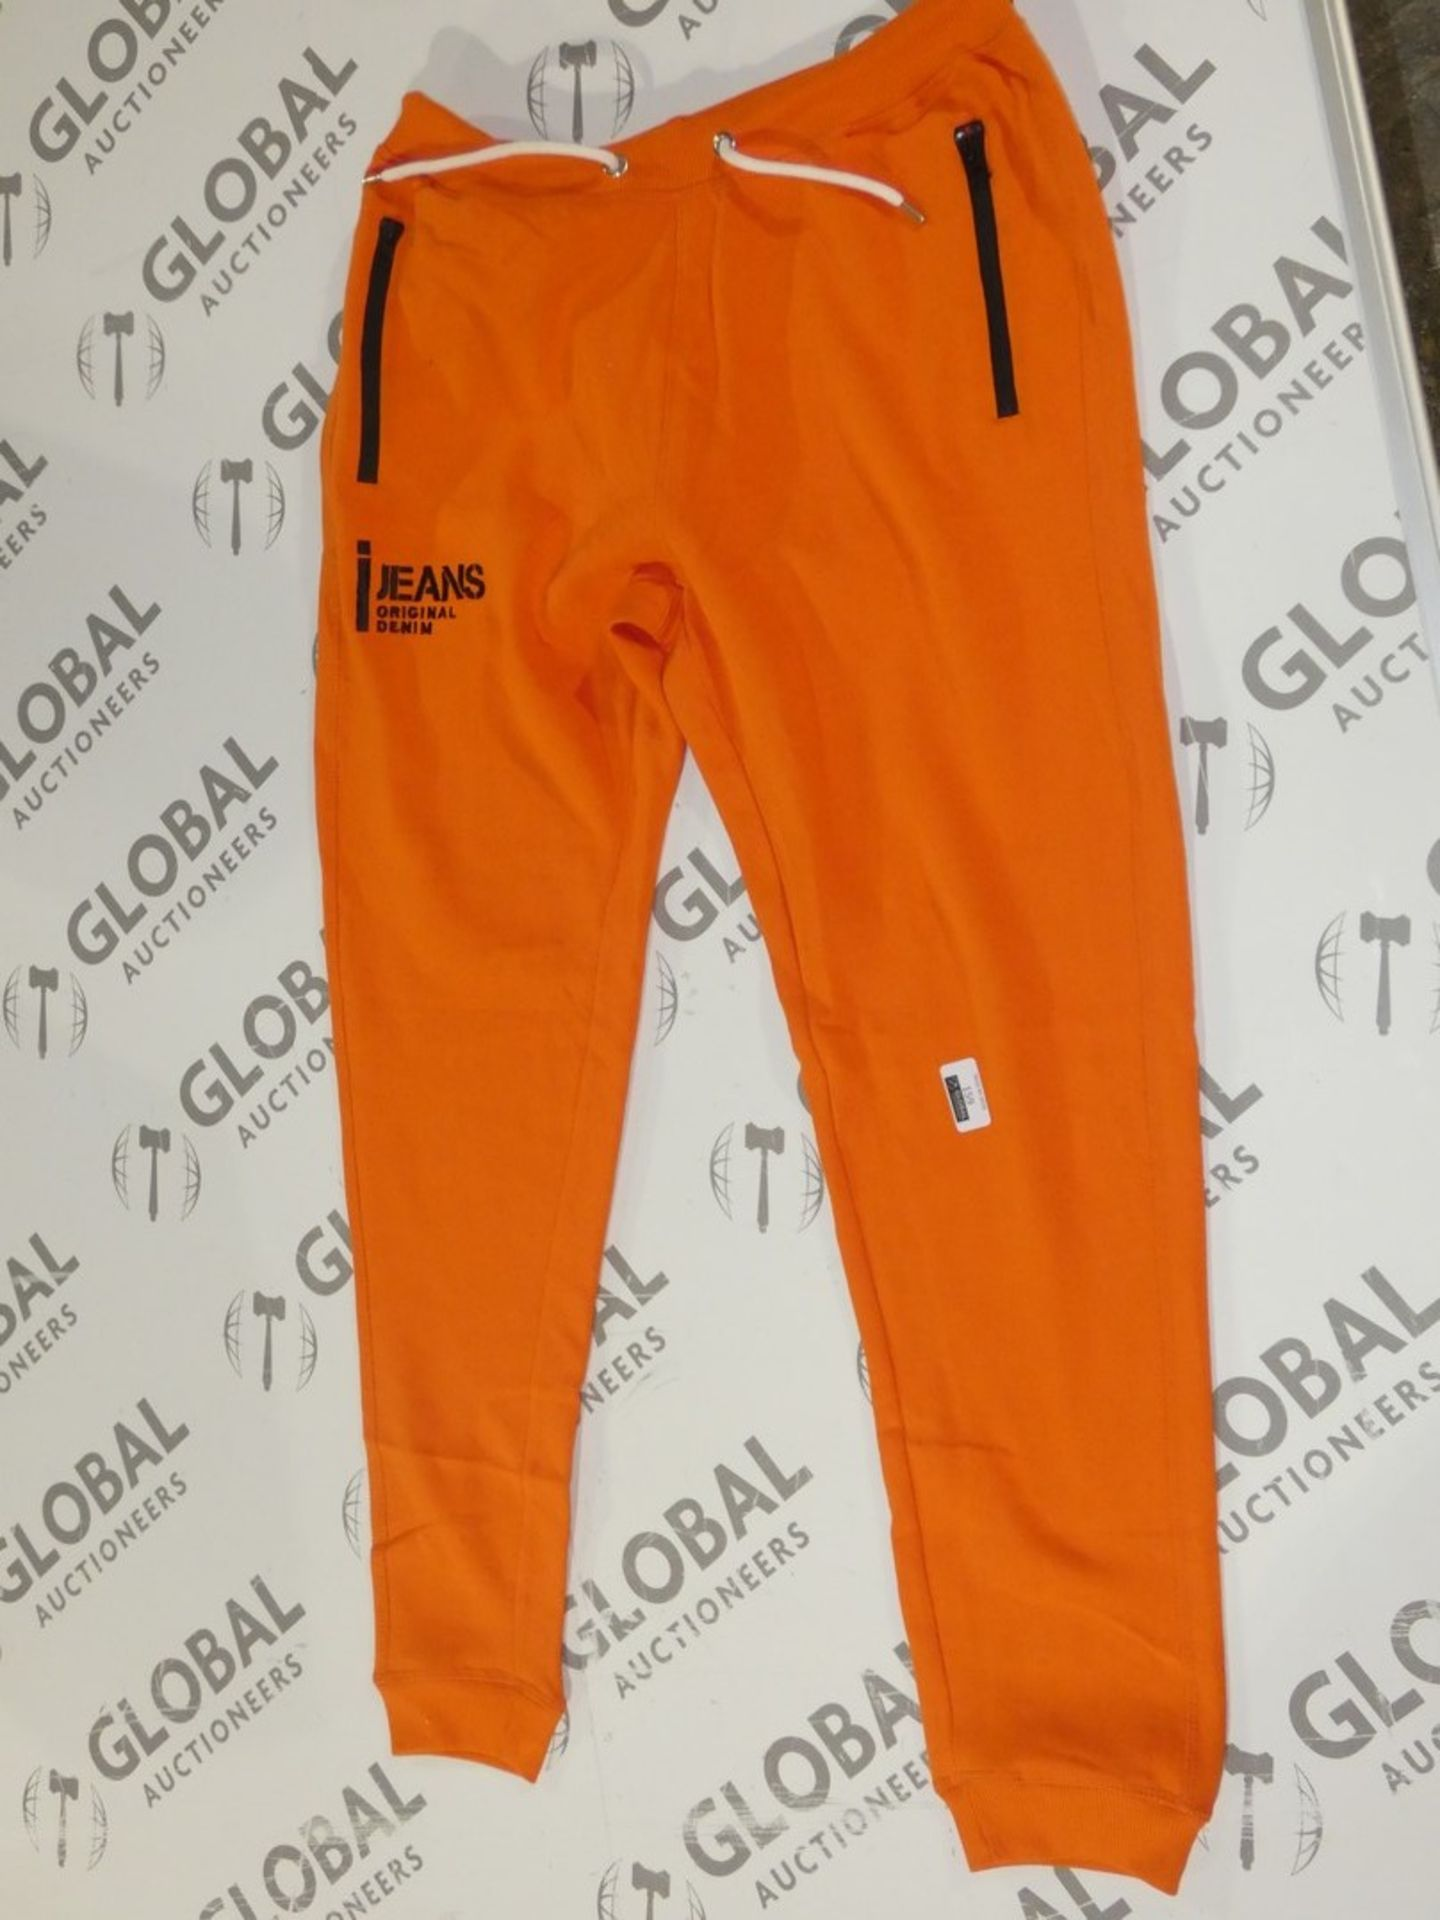 Lot 159 - Assorted Brand New Pairs Of Ijeans Original Denim Orange Lounging Pants In Assorted Sizes RRP £25